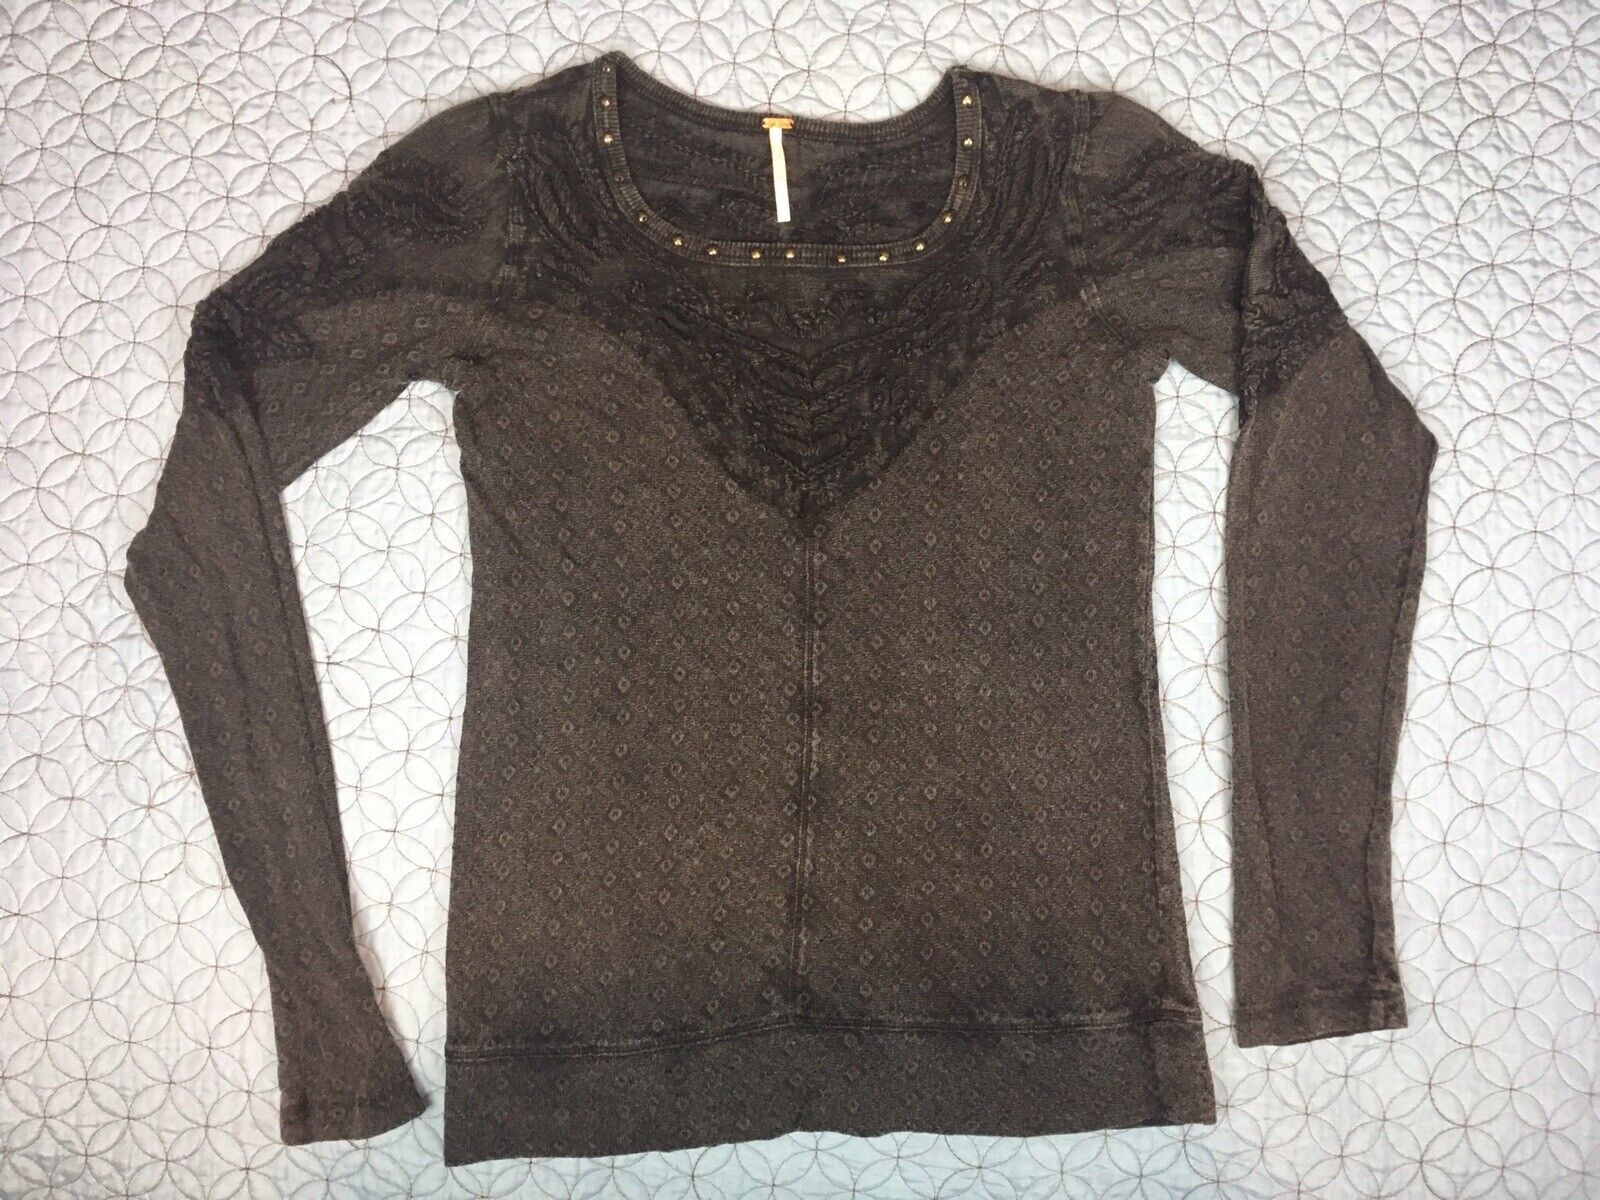 Free People Thermal Top Embroiderot Boho Steampunk Lacy Cotton Blend damen Sz S